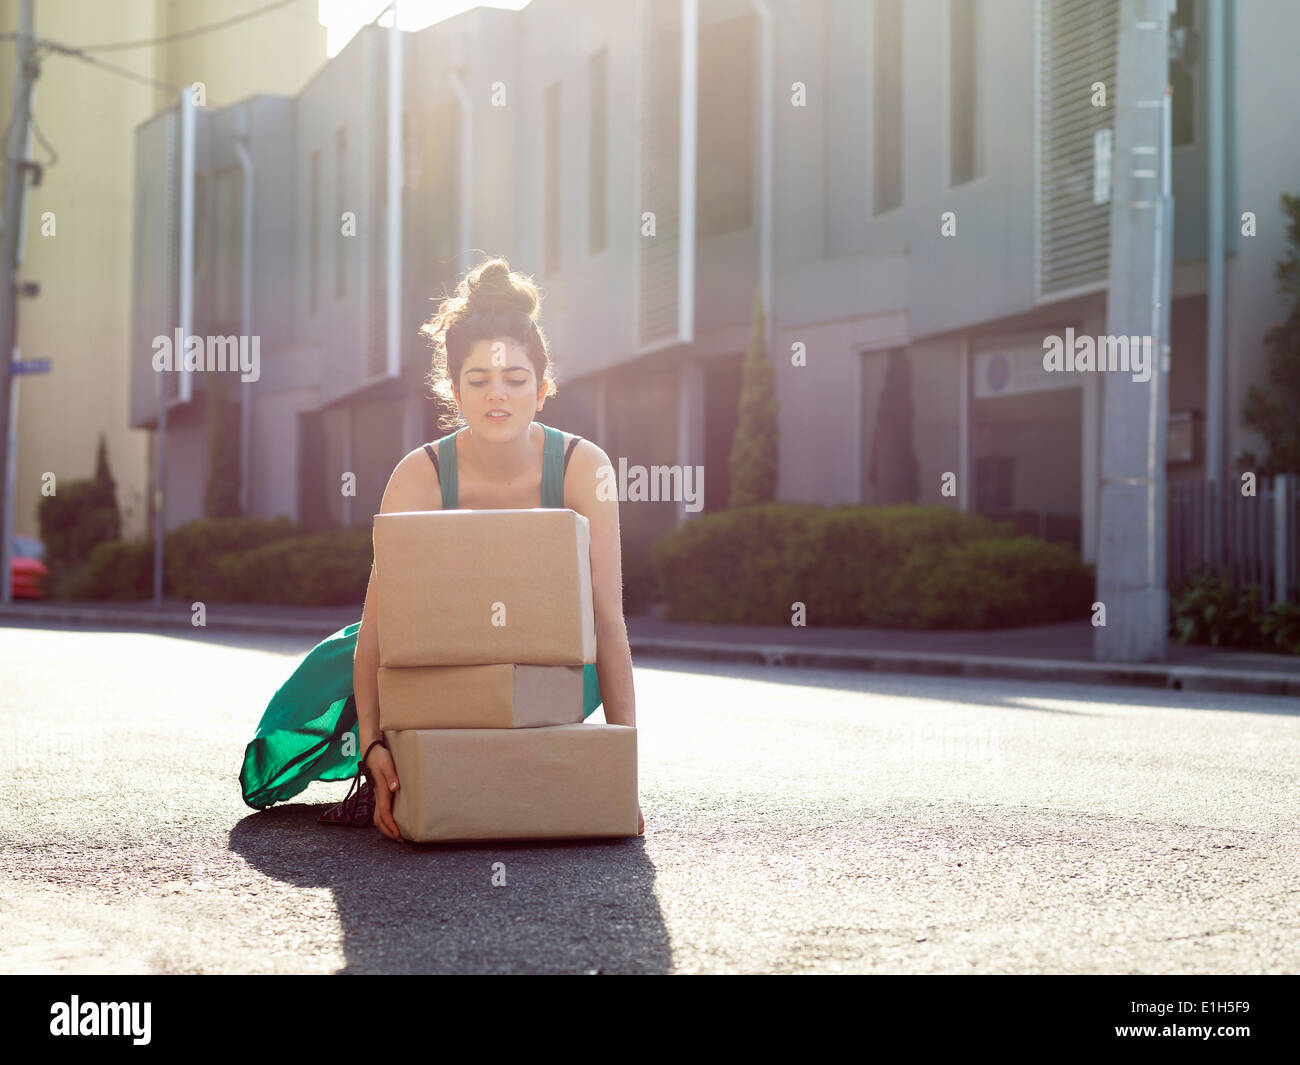 Young woman crouching to lift stack of cardboard boxes - Stock Image